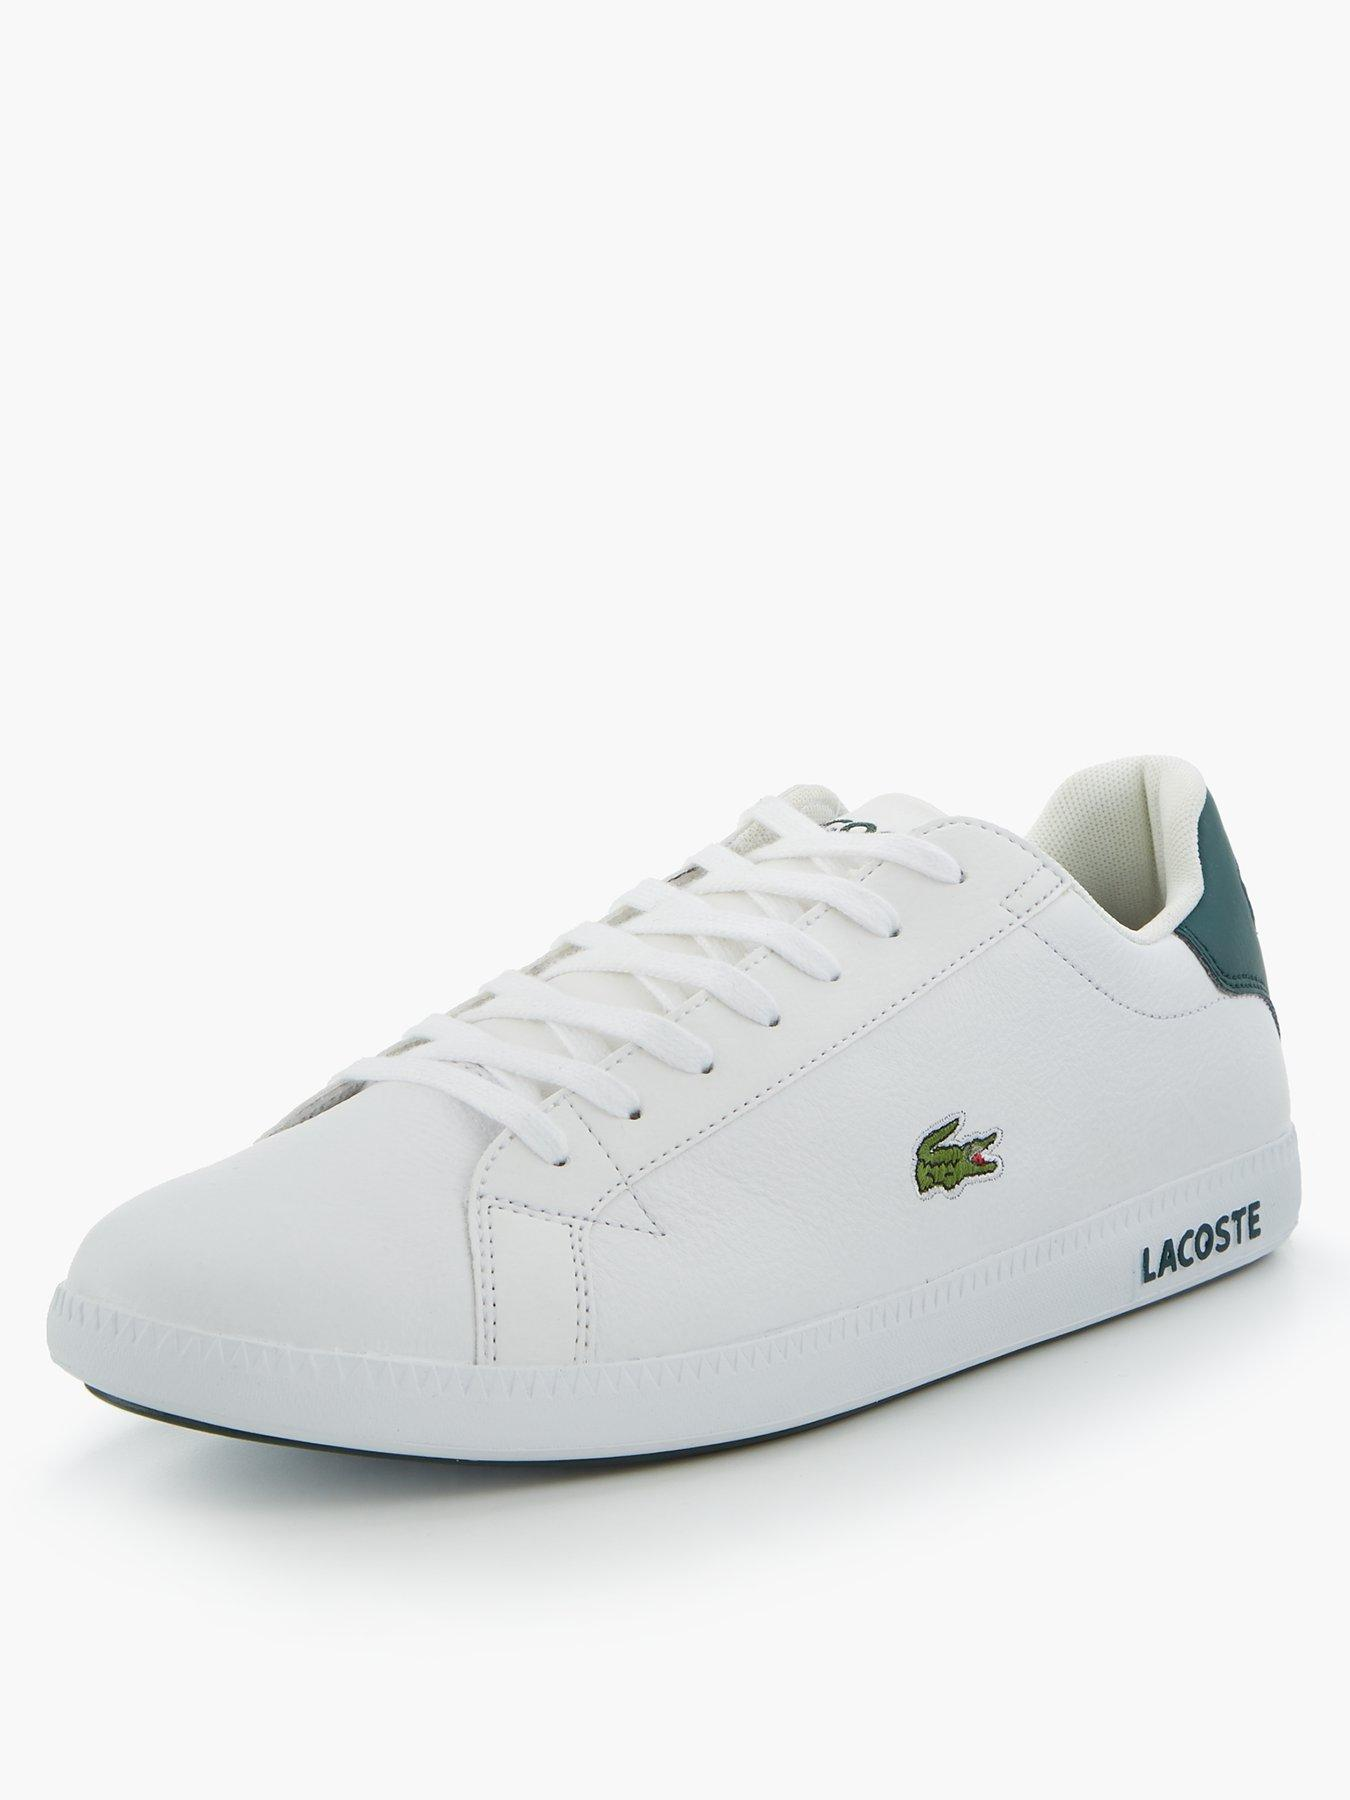 lacoste shoes classic pumps models inc intro